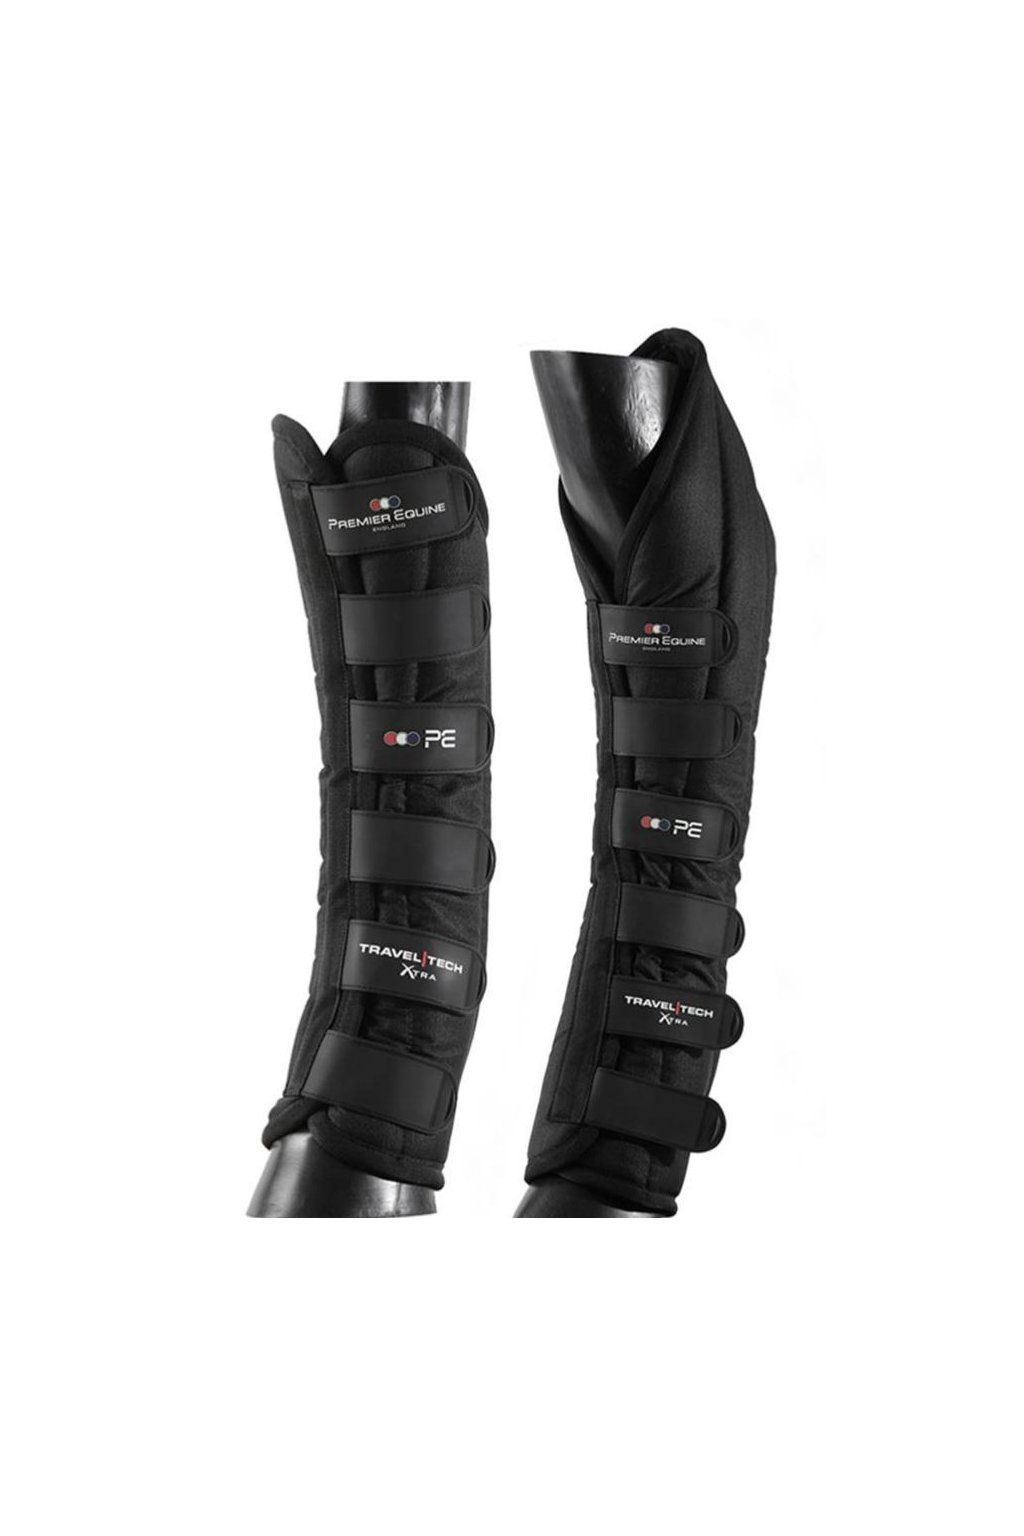 SS19 Travel Tech Xtra Travel Boots Black Front Back Main Image RGB 72 zoom